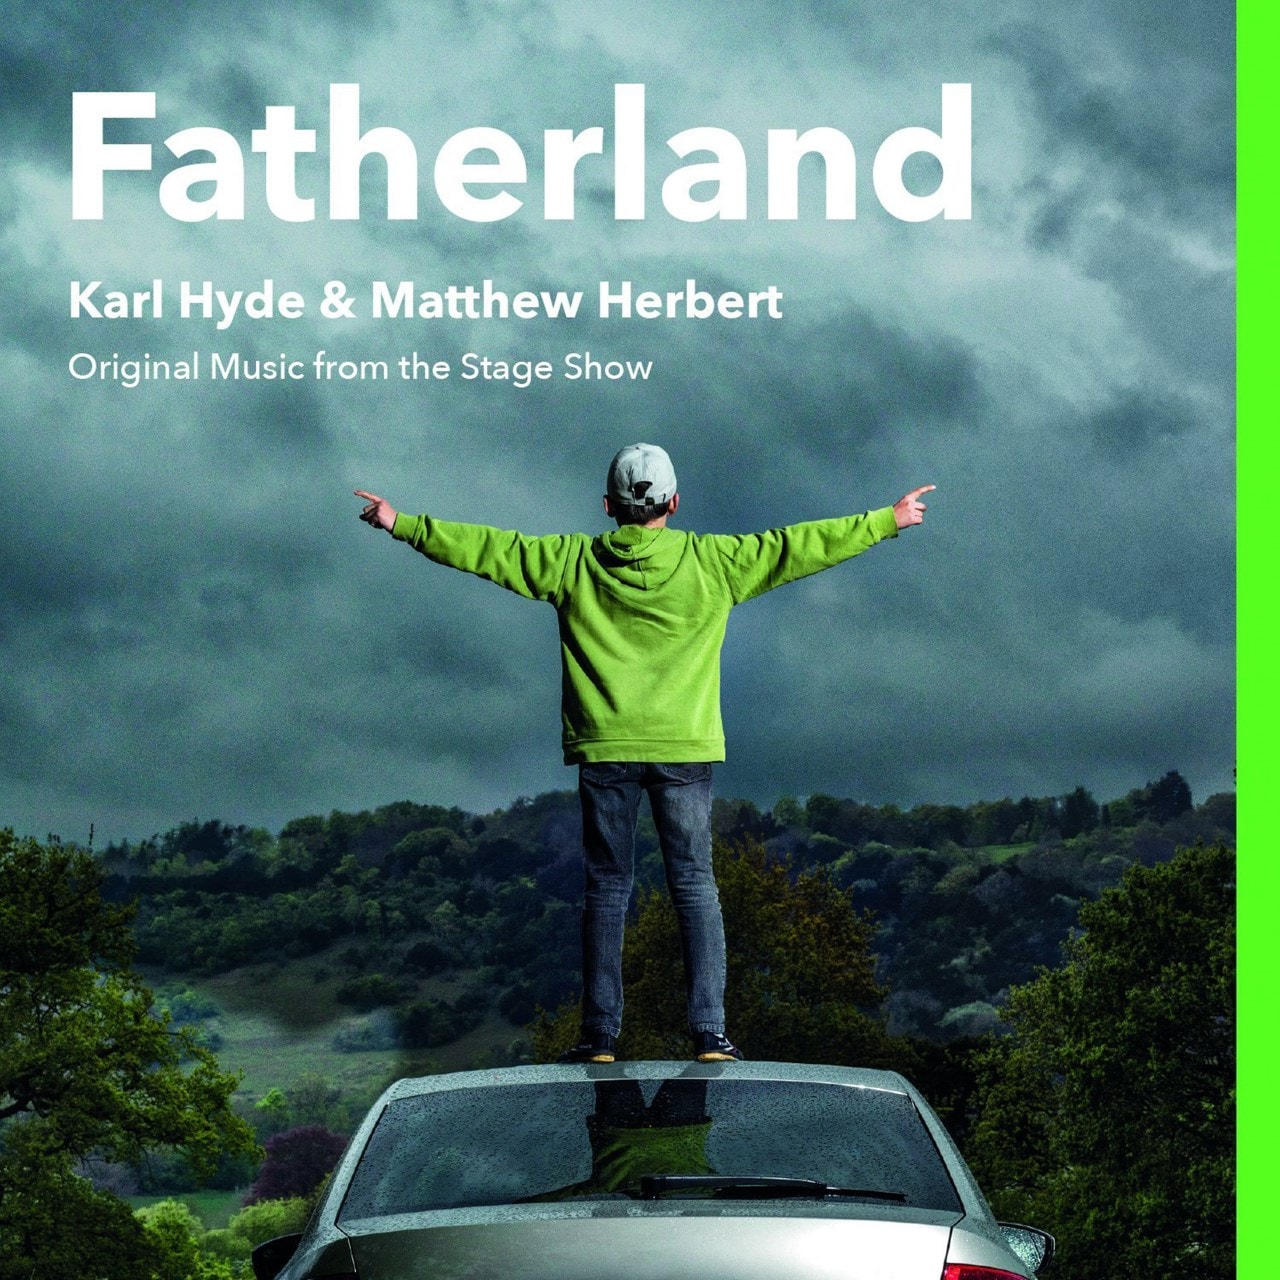 Fatherland: Original Music from the Stage Show - 1